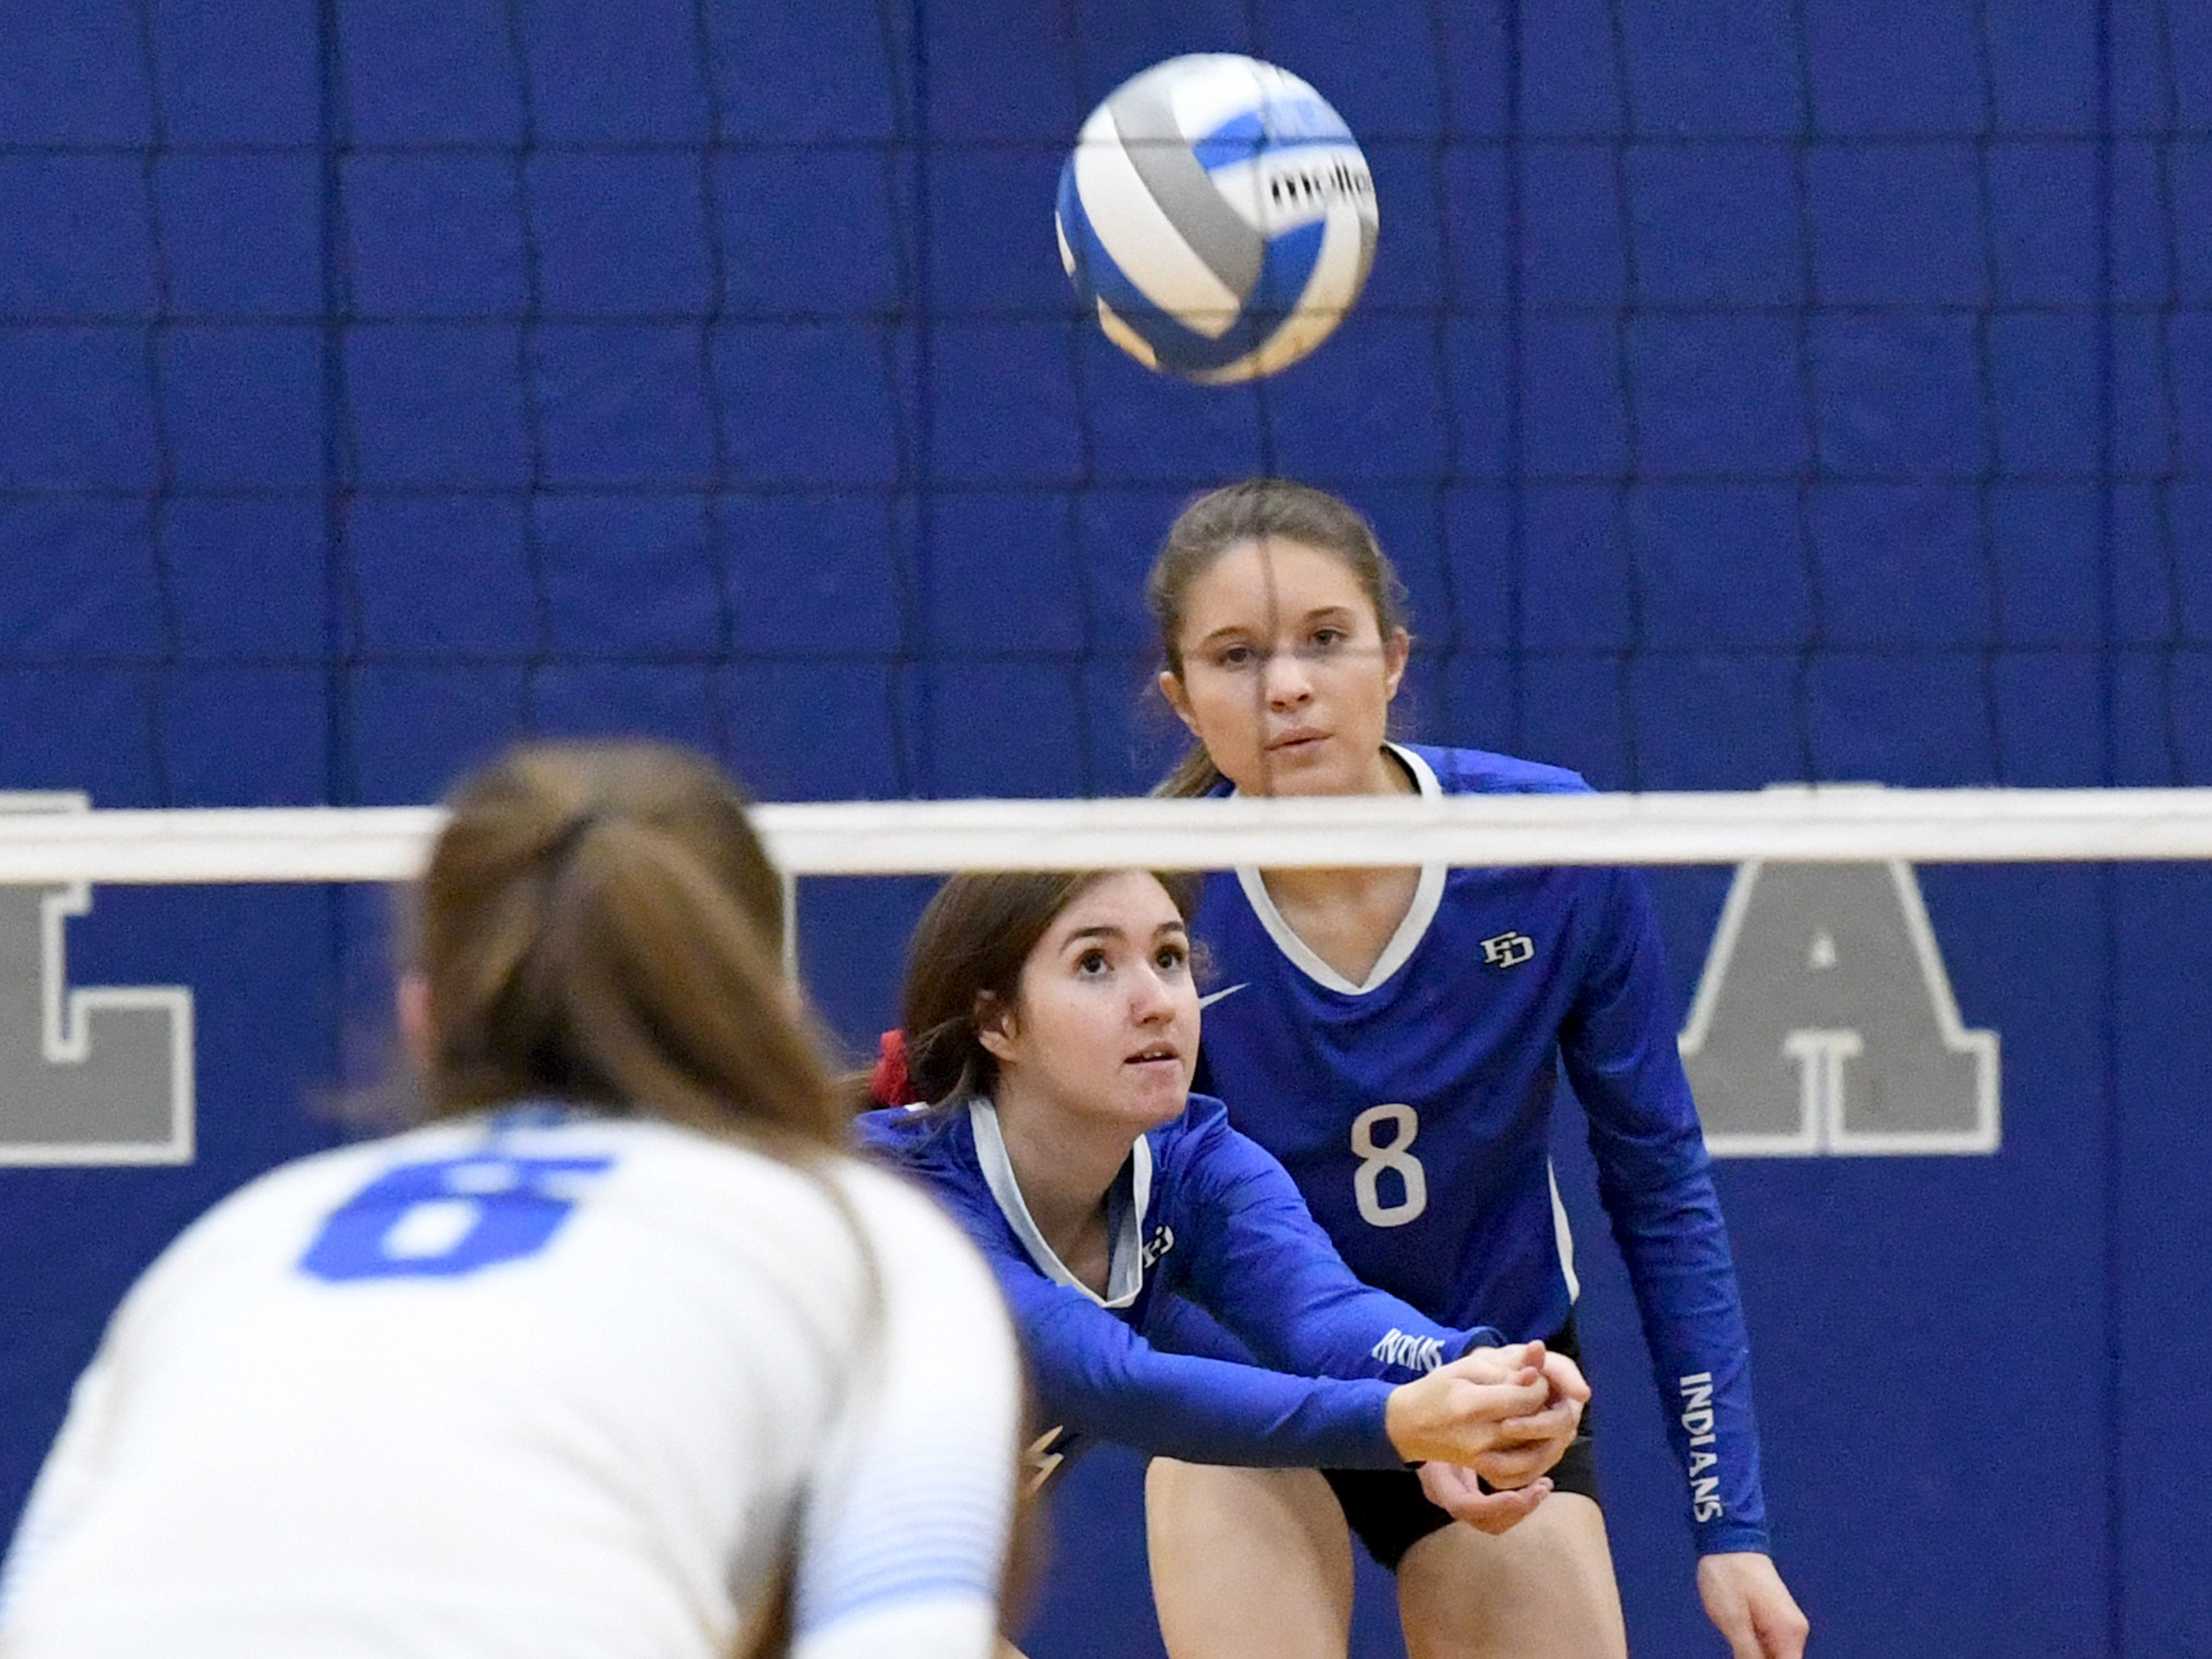 A Fort Defiance player bumps the ball to keep it in the air as Fort's Casey Mozingo watches during a Region 3C semifinal match played in Lexington on Monday, Nov. 5, 2018.